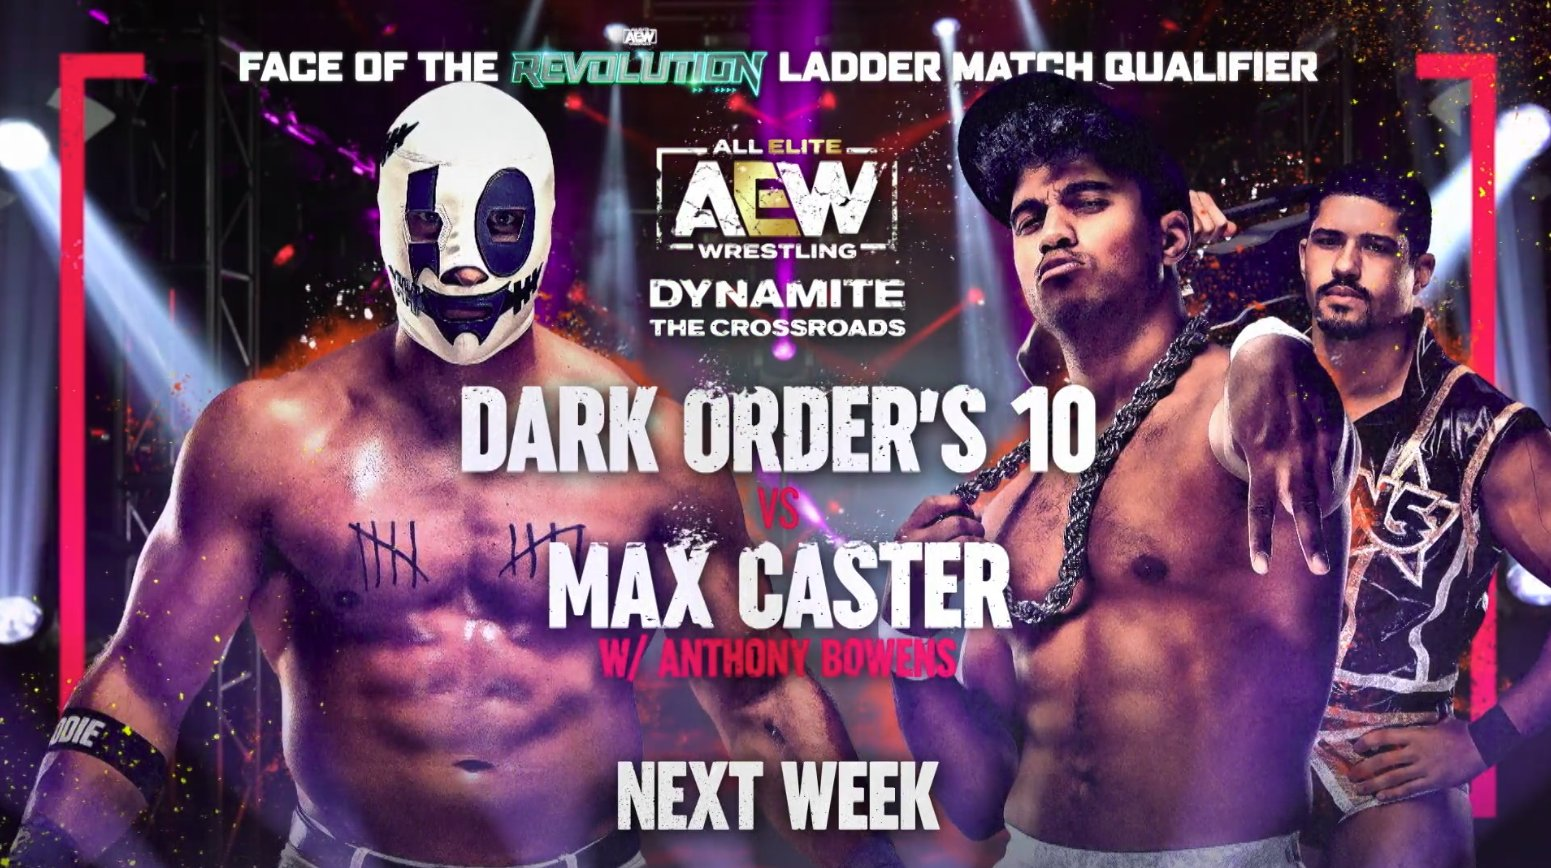 """All Elite Wrestling on Twitter: """"The Face of the Revolution Ladder Match Qualifier continues this Wednesday as Dark Order's 10 takes on one-half of The Acclaimed Max Caster! Who takes the next"""